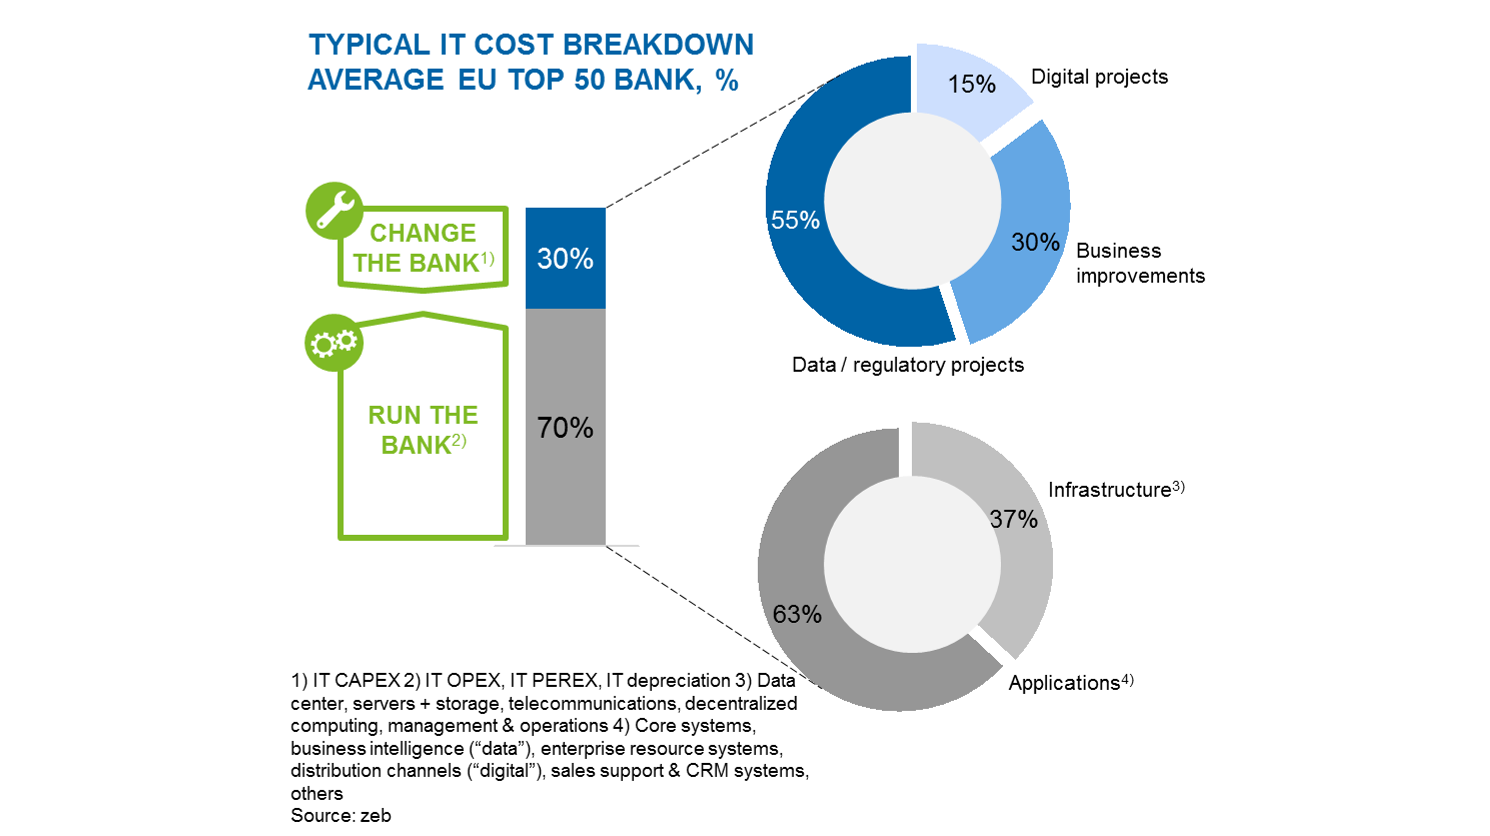 Typical IT costs breakdown of an average EU top 50 bank